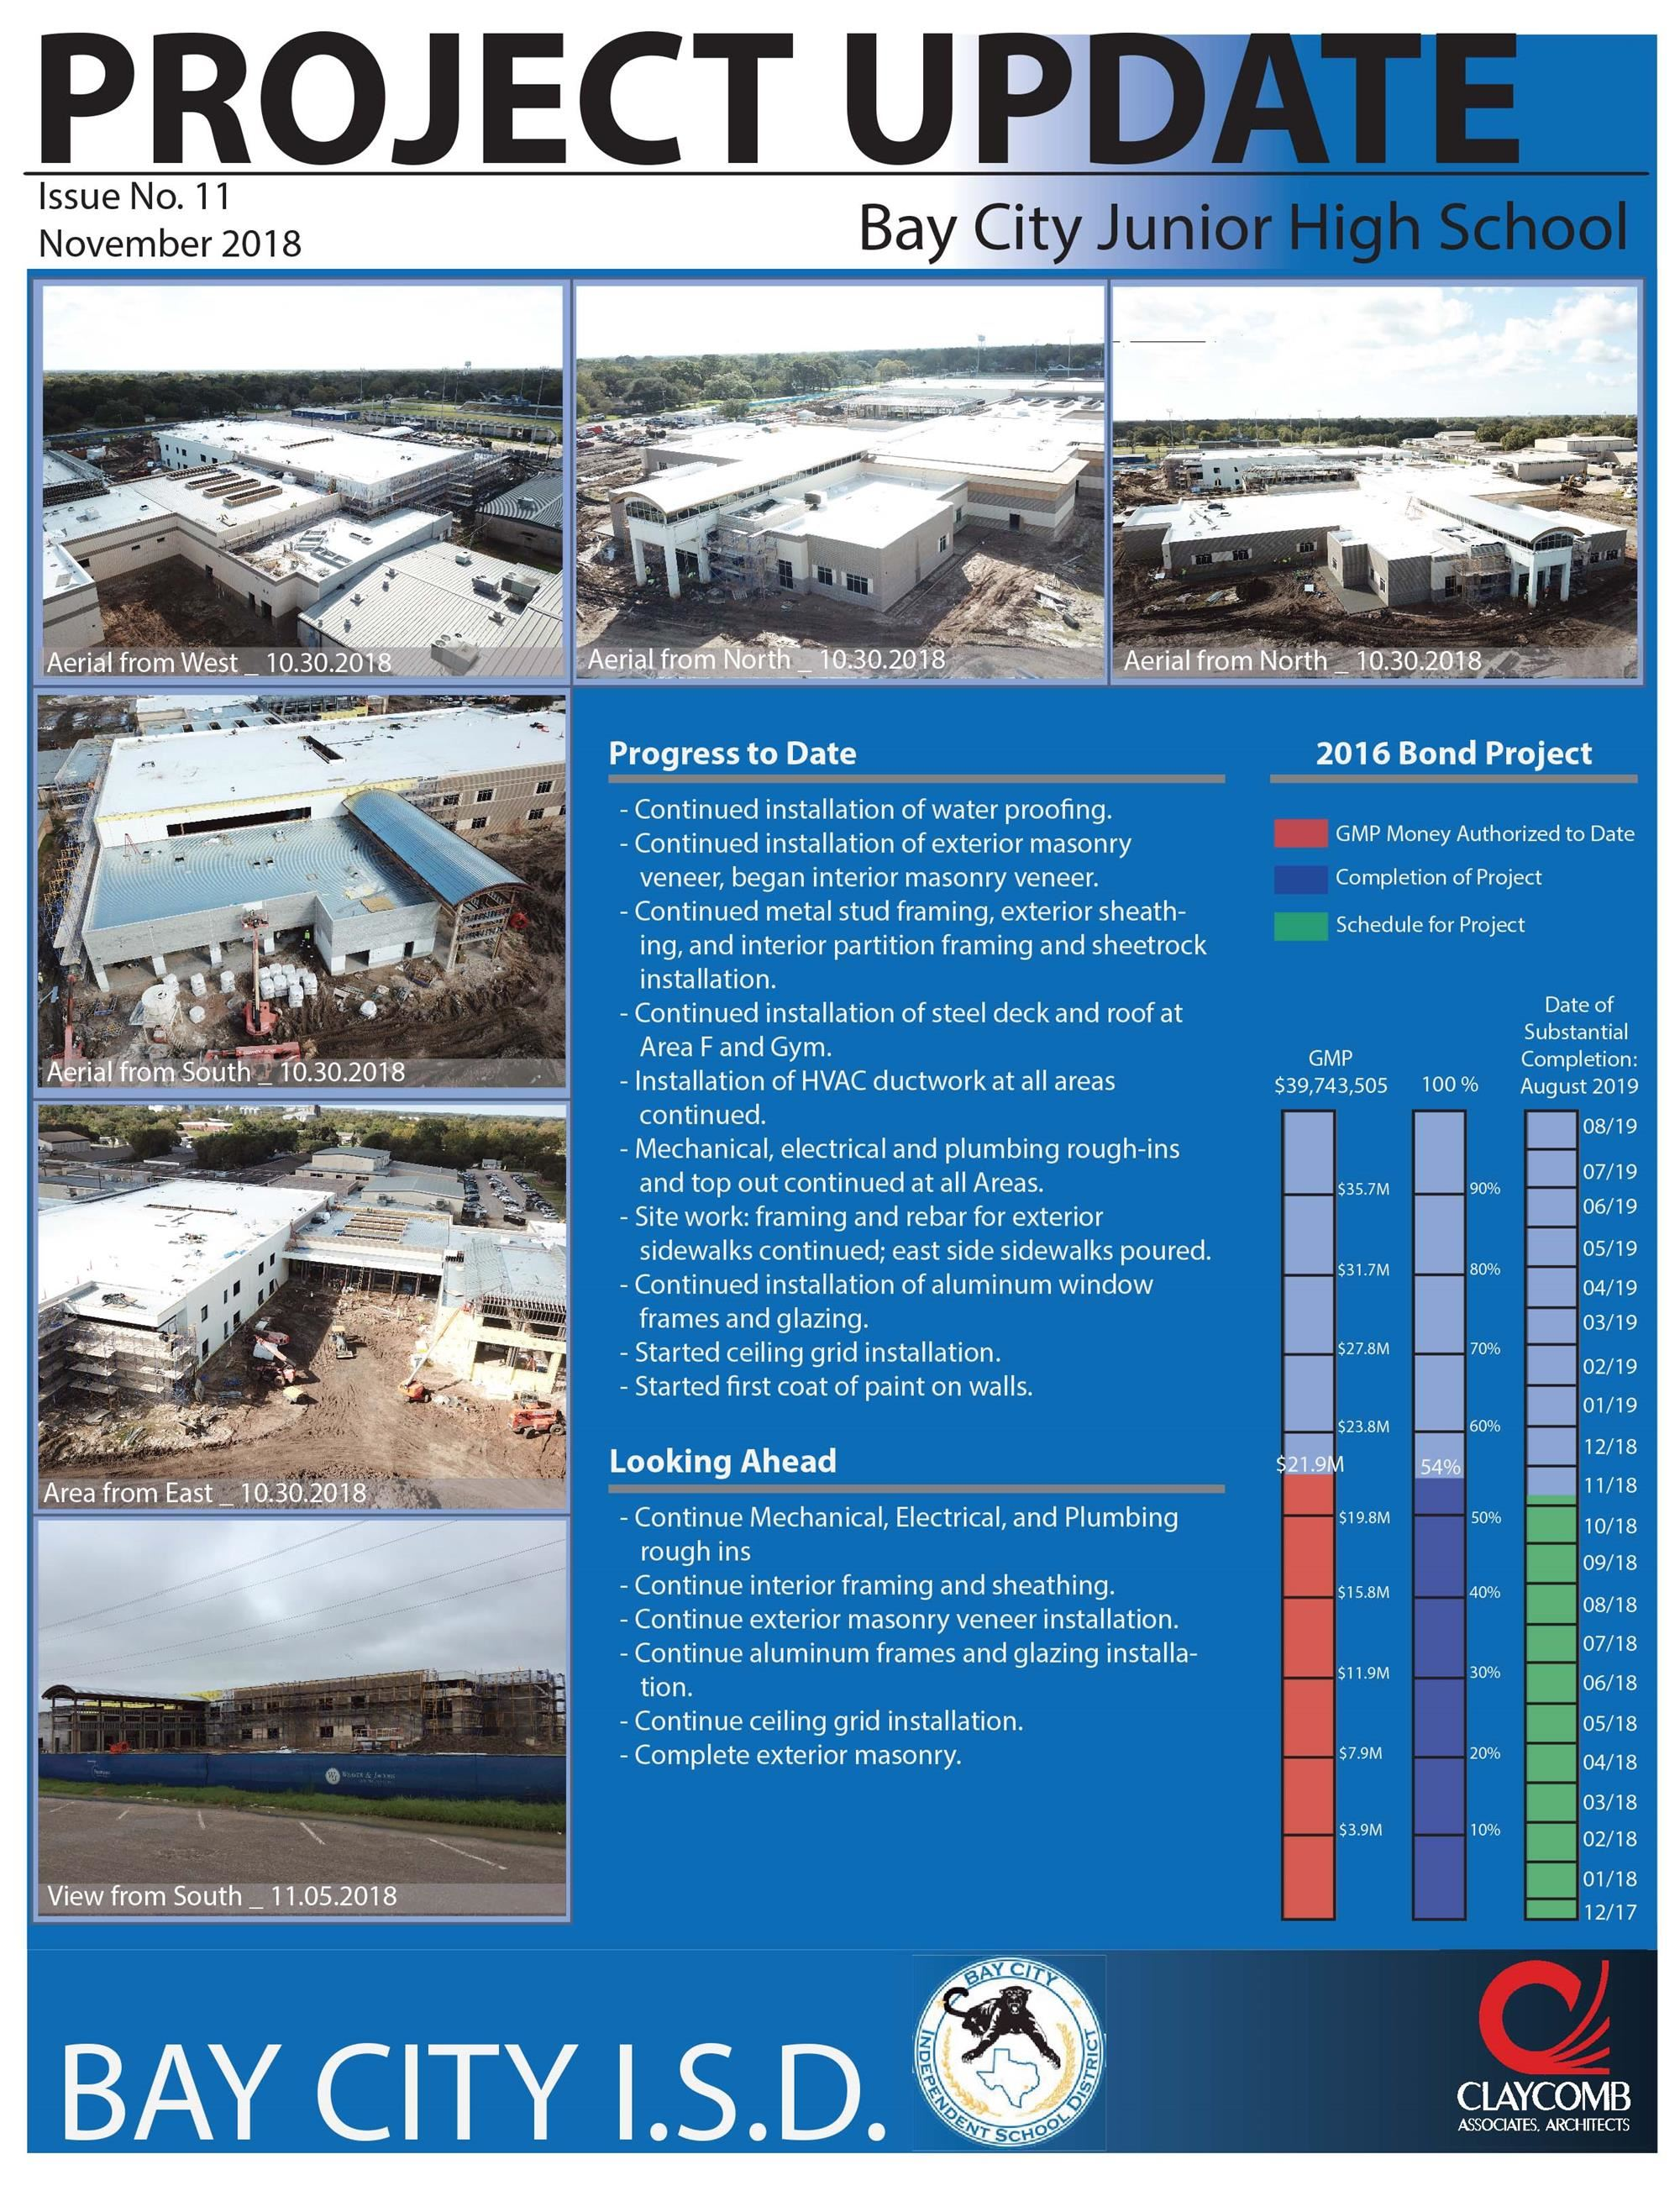 BCJH bond update Nov photo of PDF